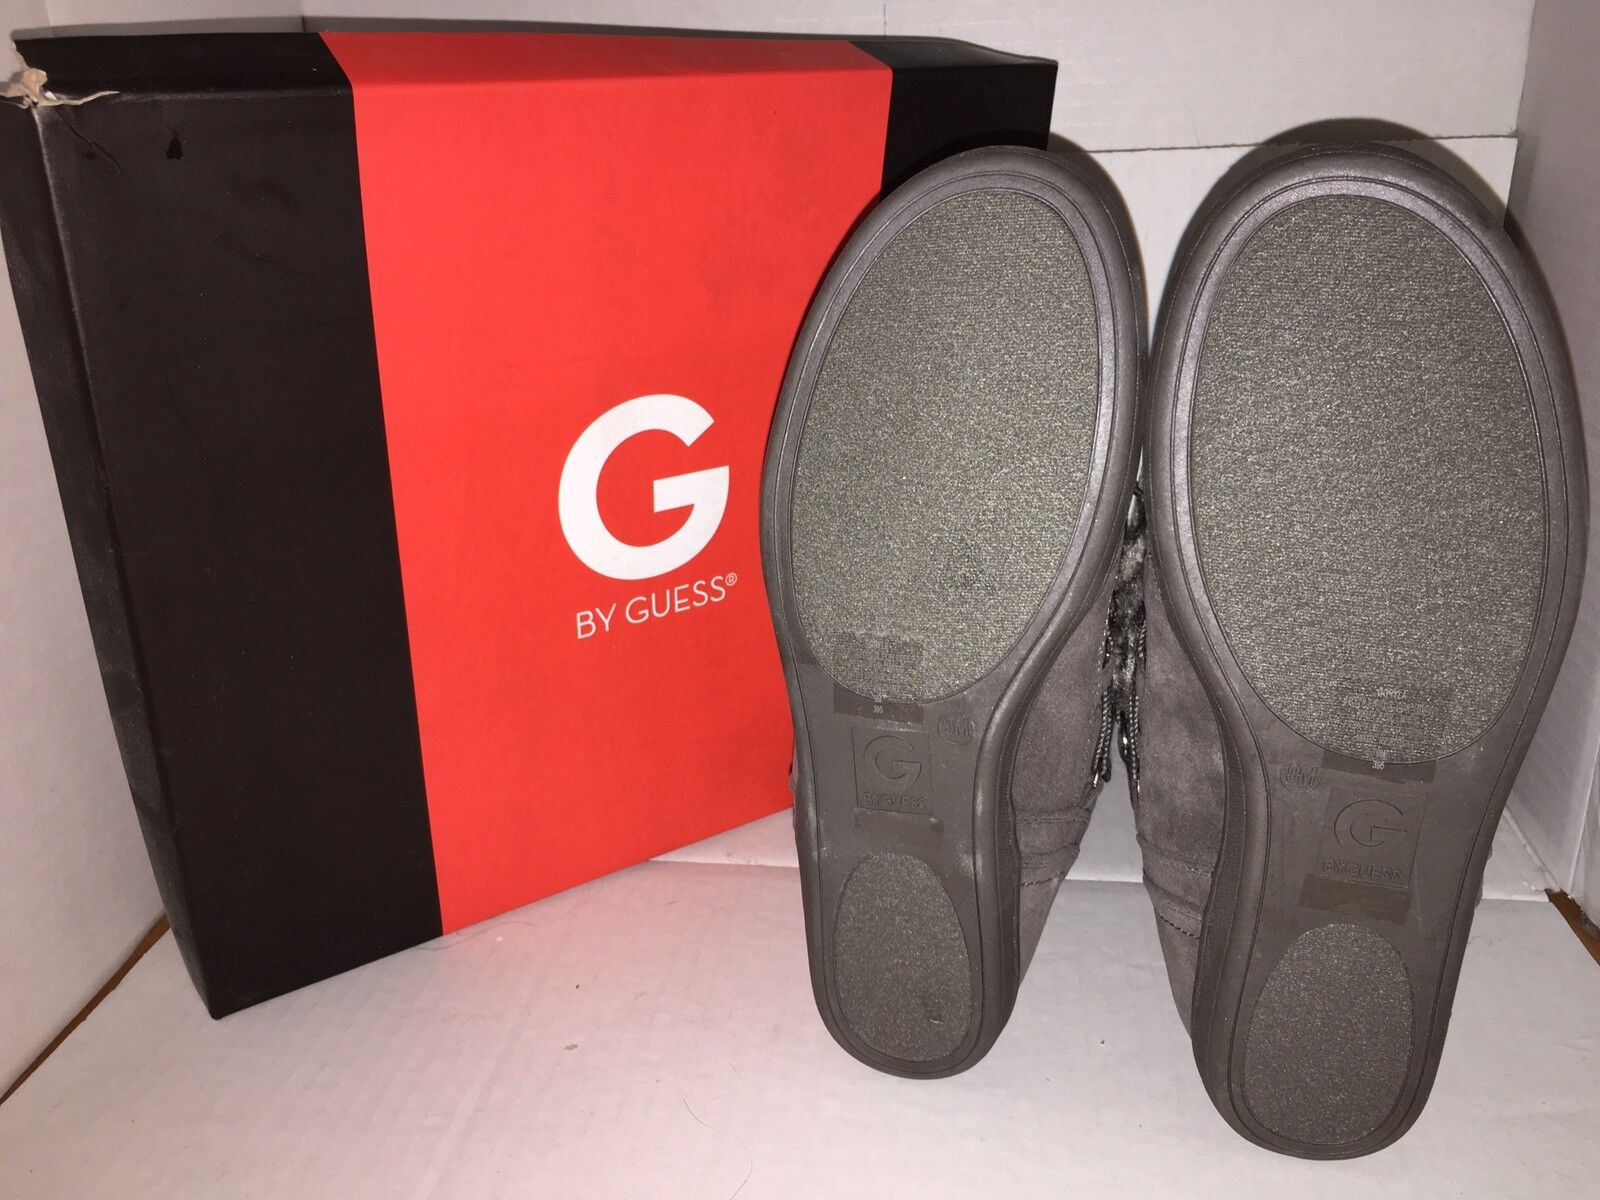 G by Guess Guess Guess Ryla Faux Suede Faux-Fur Trim Booties 10M NIB Charcoal Grey c95526